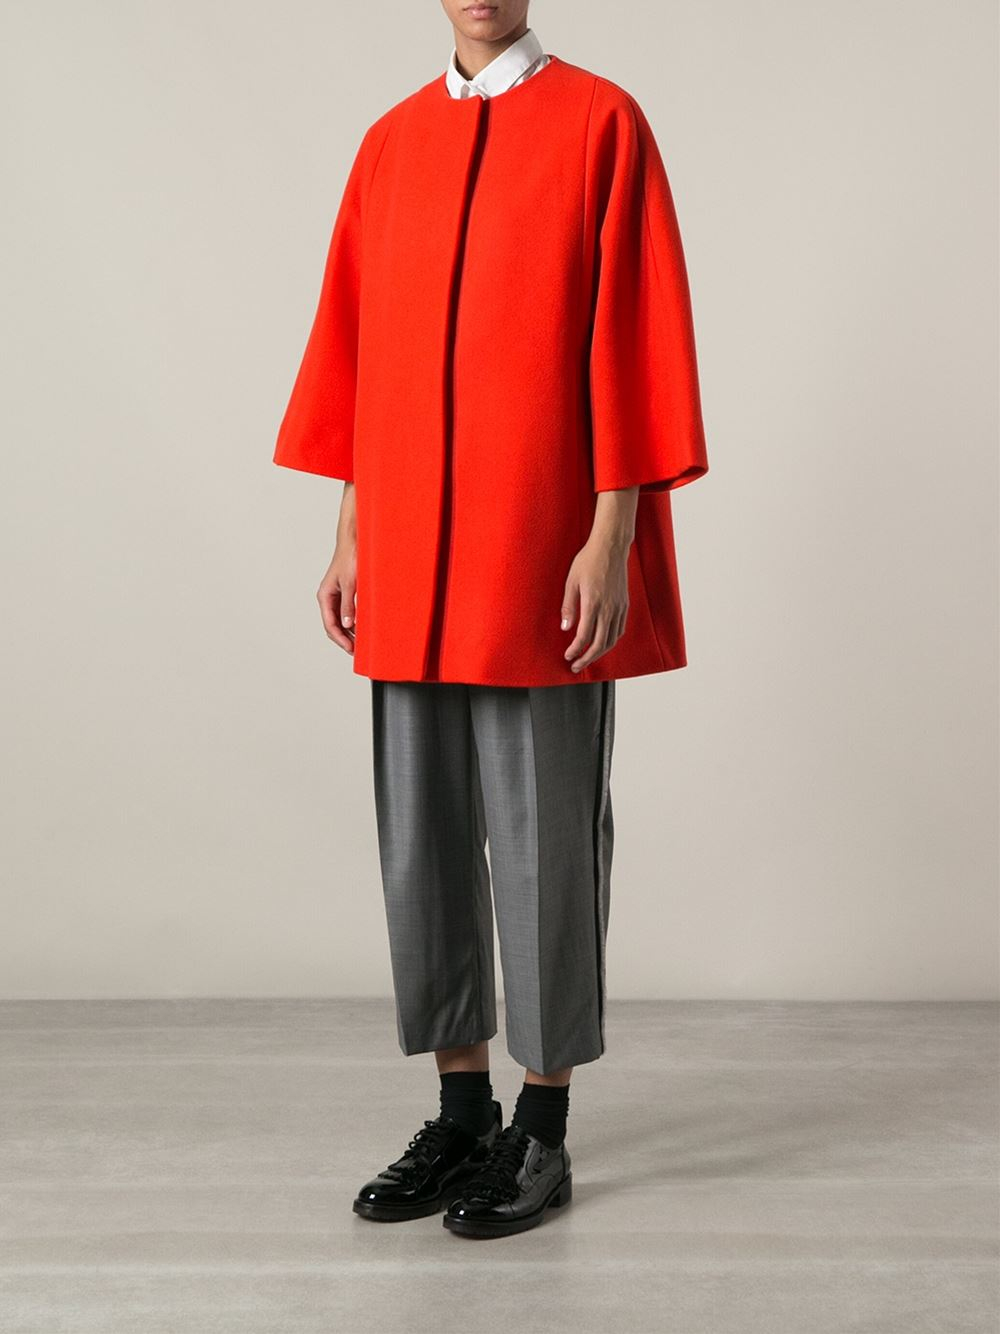 Msgm Oversize Collarless Coat in Red | Lyst